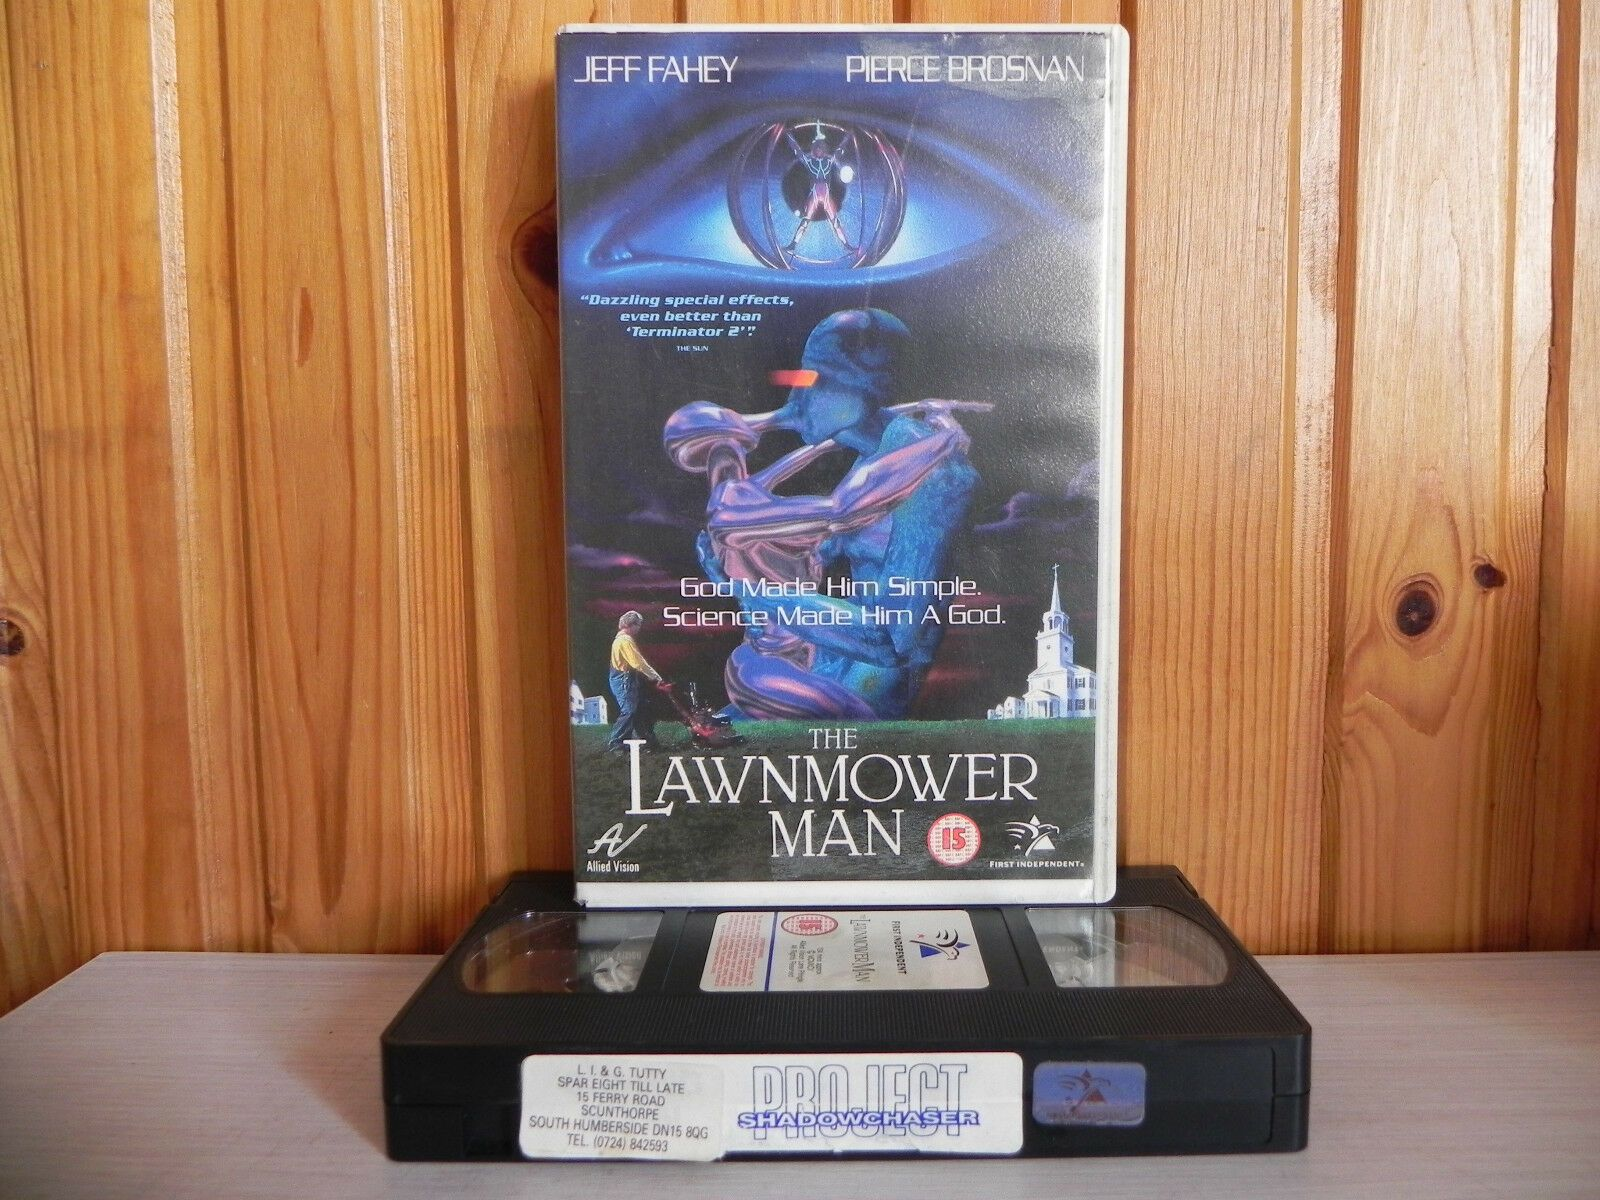 The Lawnmower Man - Stephen King Adaptation - Brosnan - Big Box Rental - Pal VHS